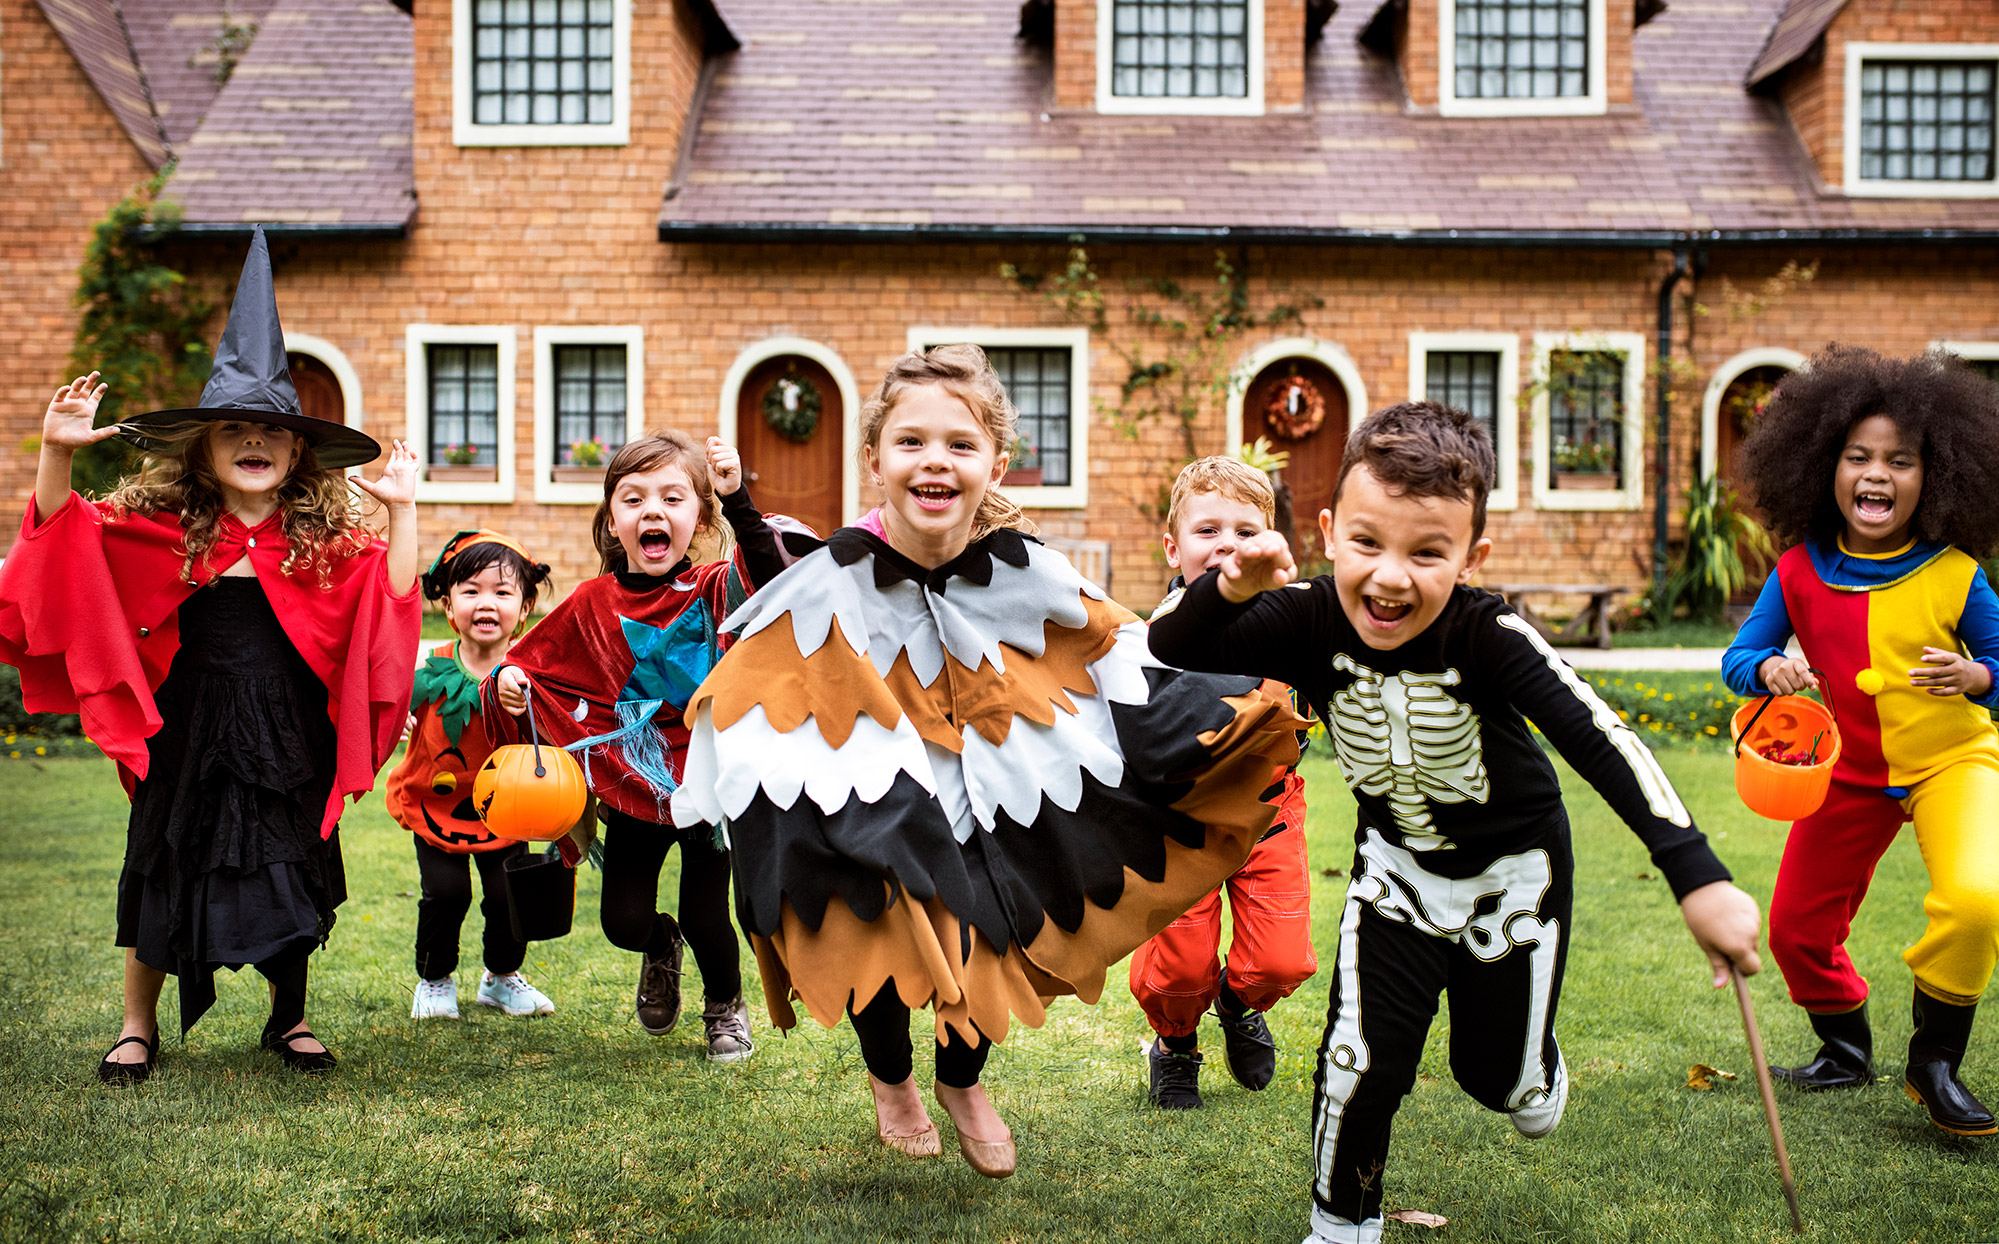 kids wearing halloween costumes in a yard about to go trick or treating